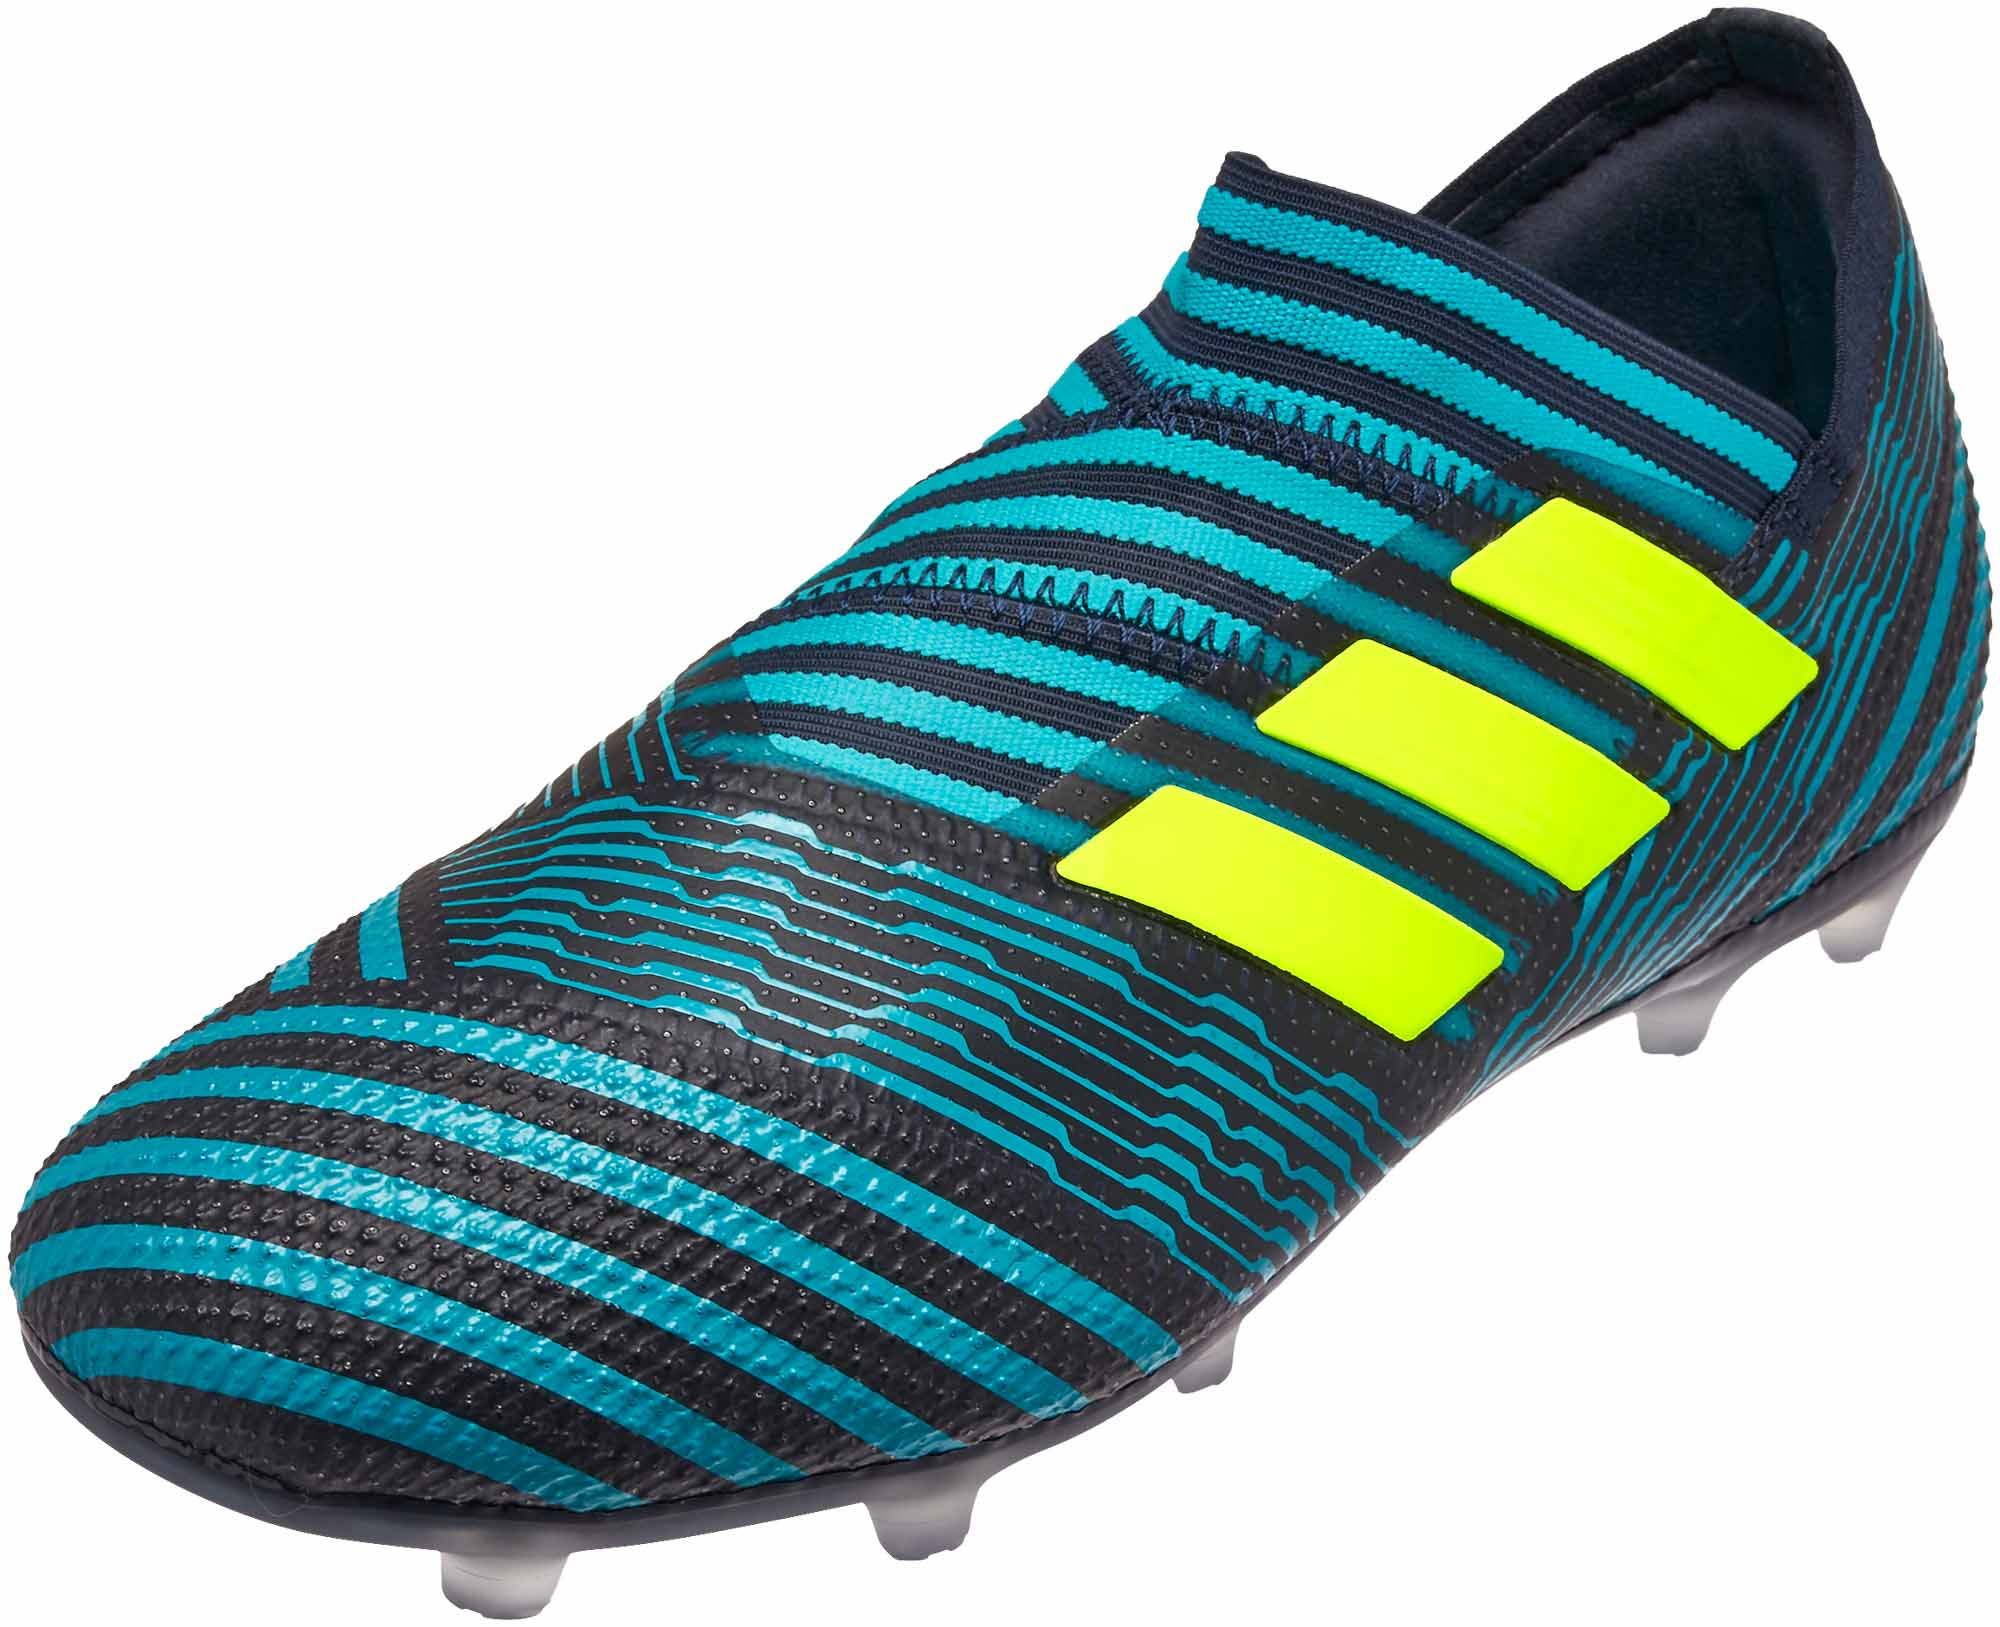 2541ac0f4c58 Kids adidas Nemeziz 17+ 360Agility FG Soccer Cleats – Legend Ink   Solar  Yellow